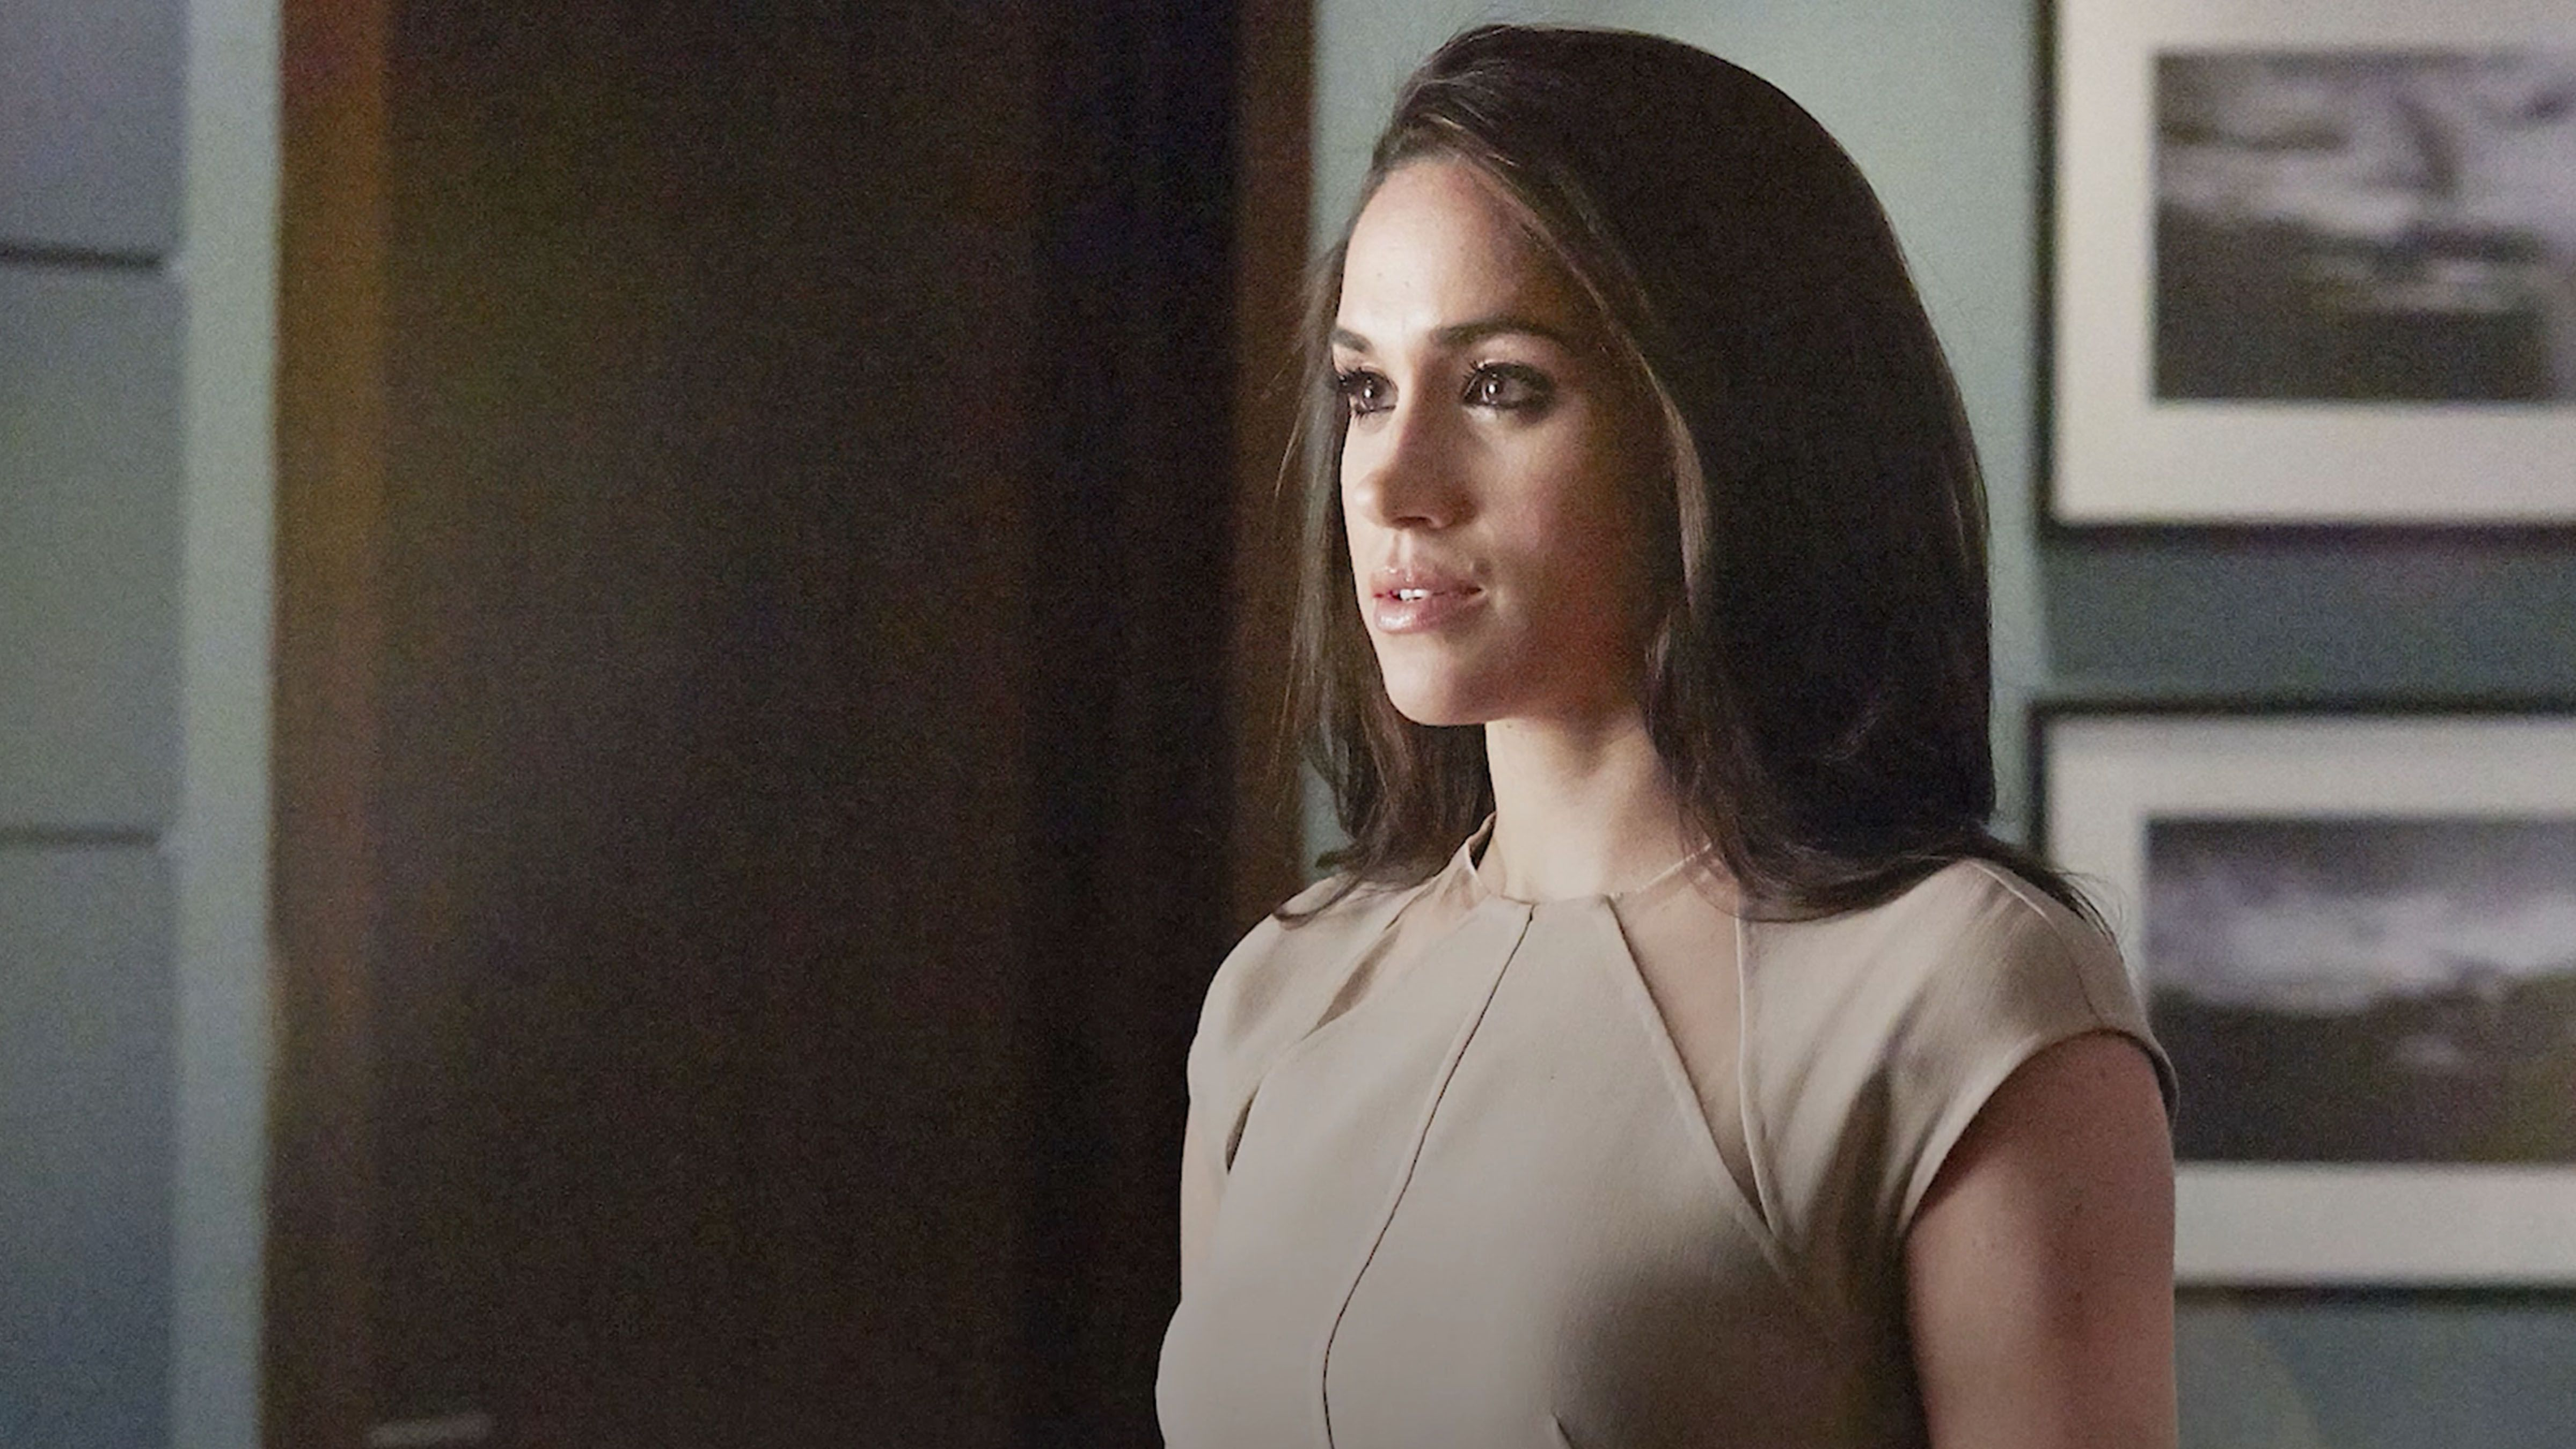 Meghan Markle's Personal Makeup Artist Reveals the Secret to Her Perfect Brows